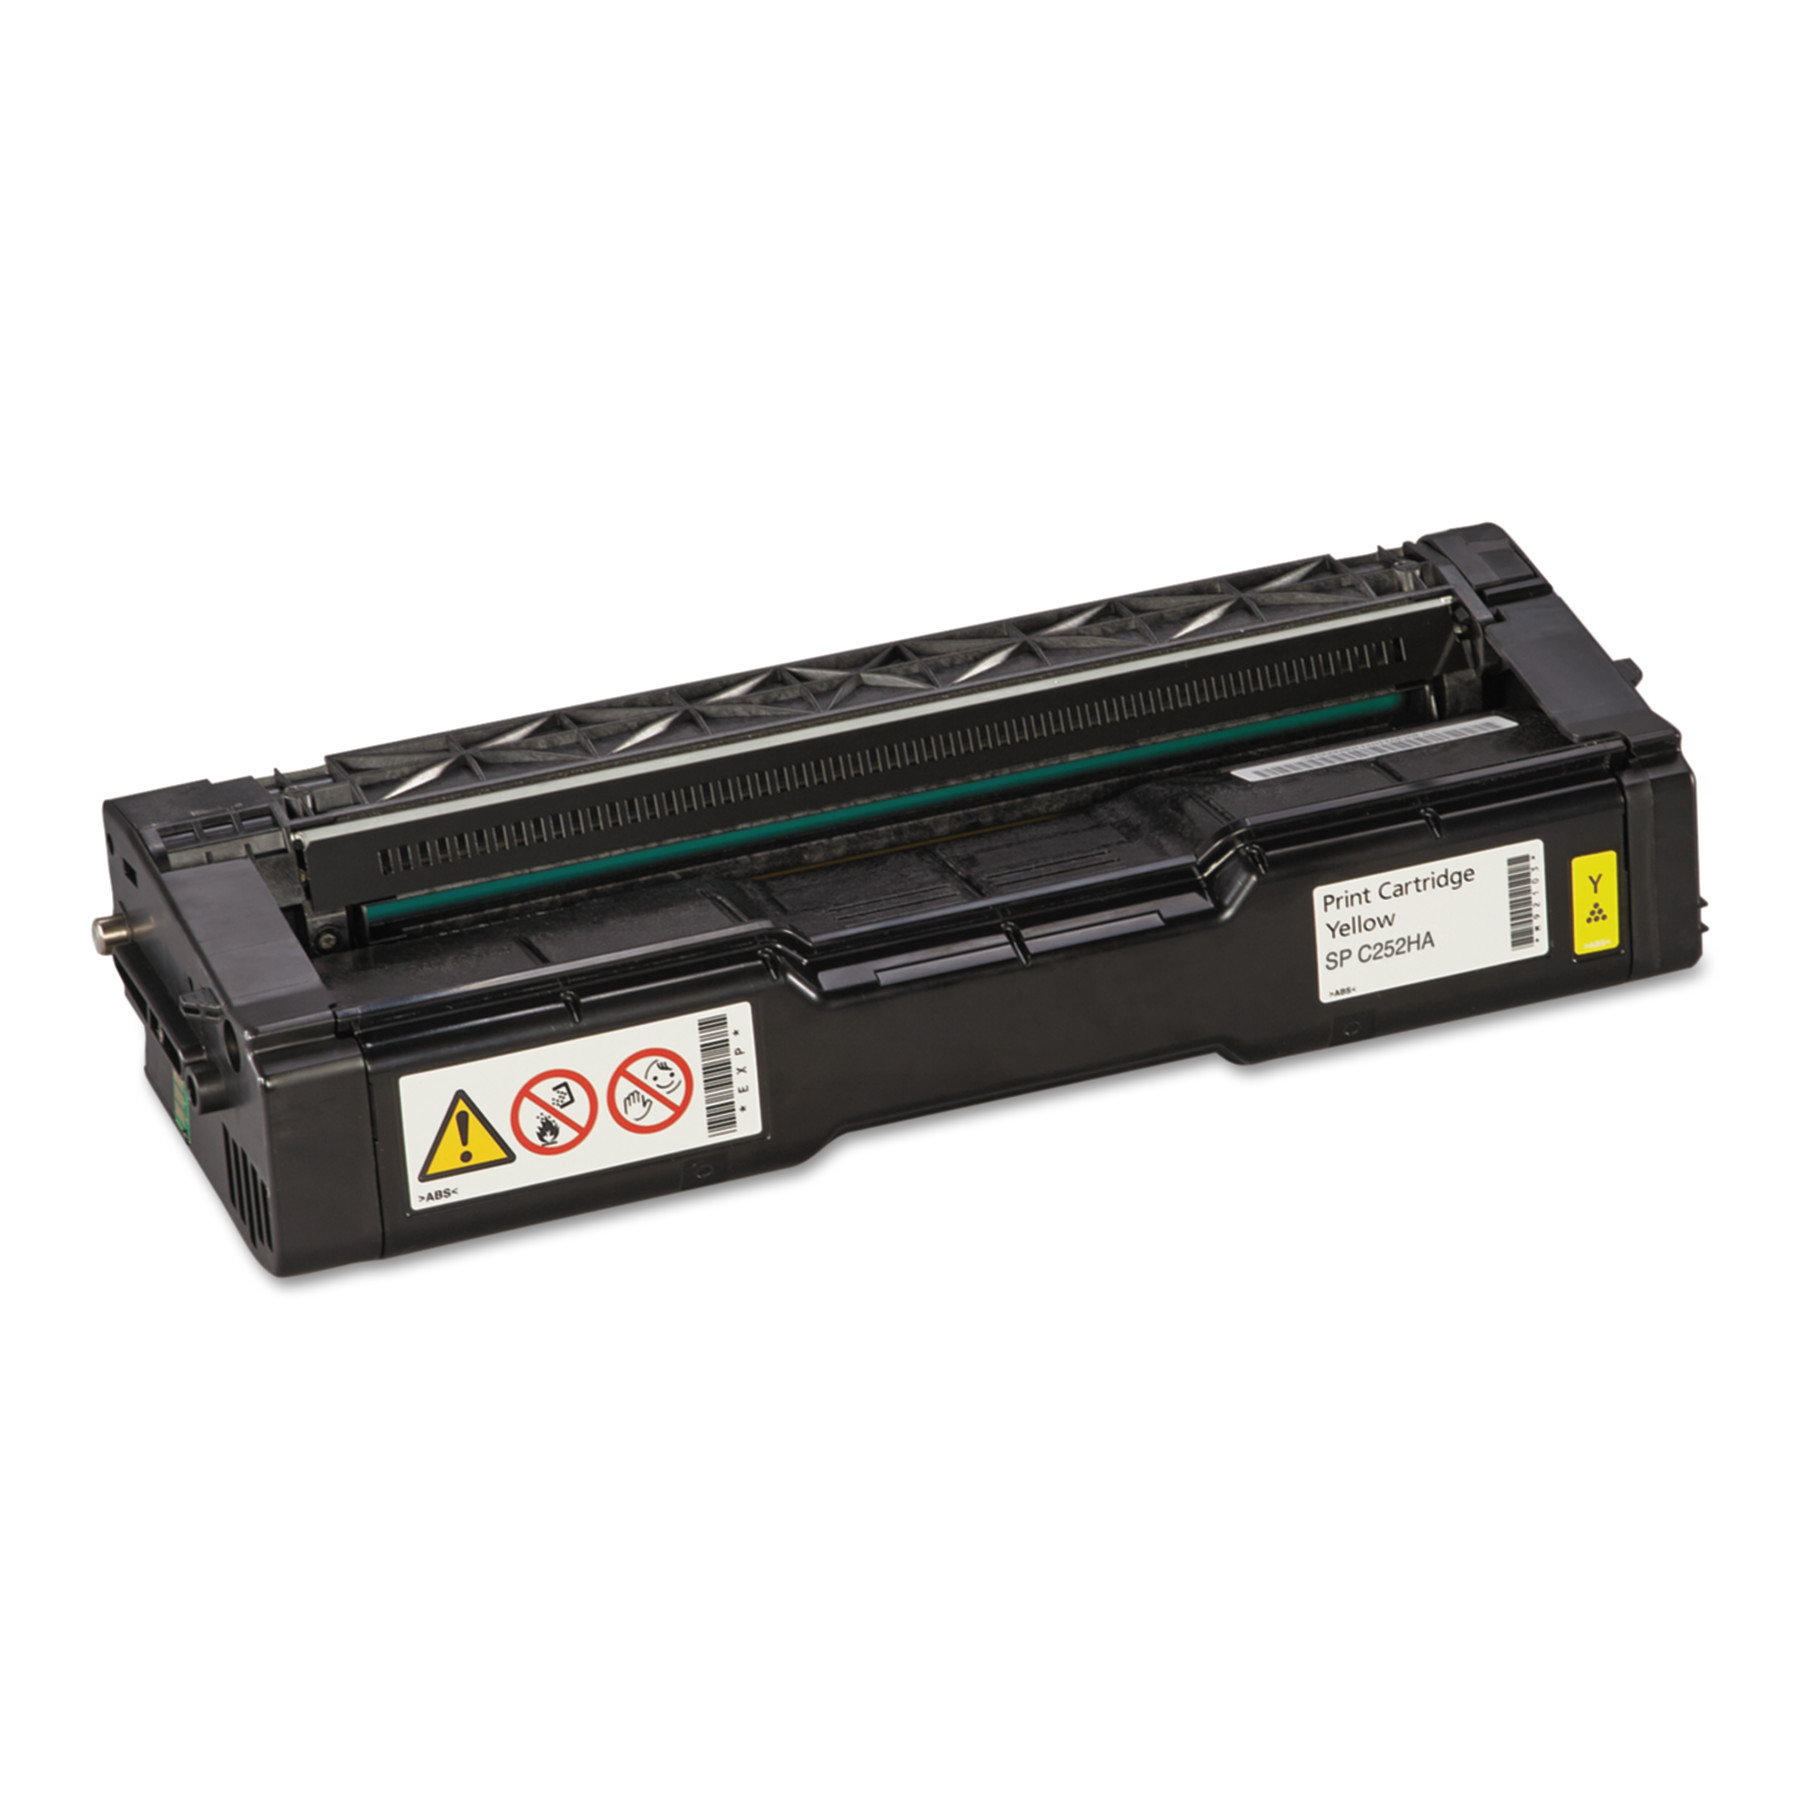 Ricoh 407656 Toner, 6000 Page-Yield, Yellow